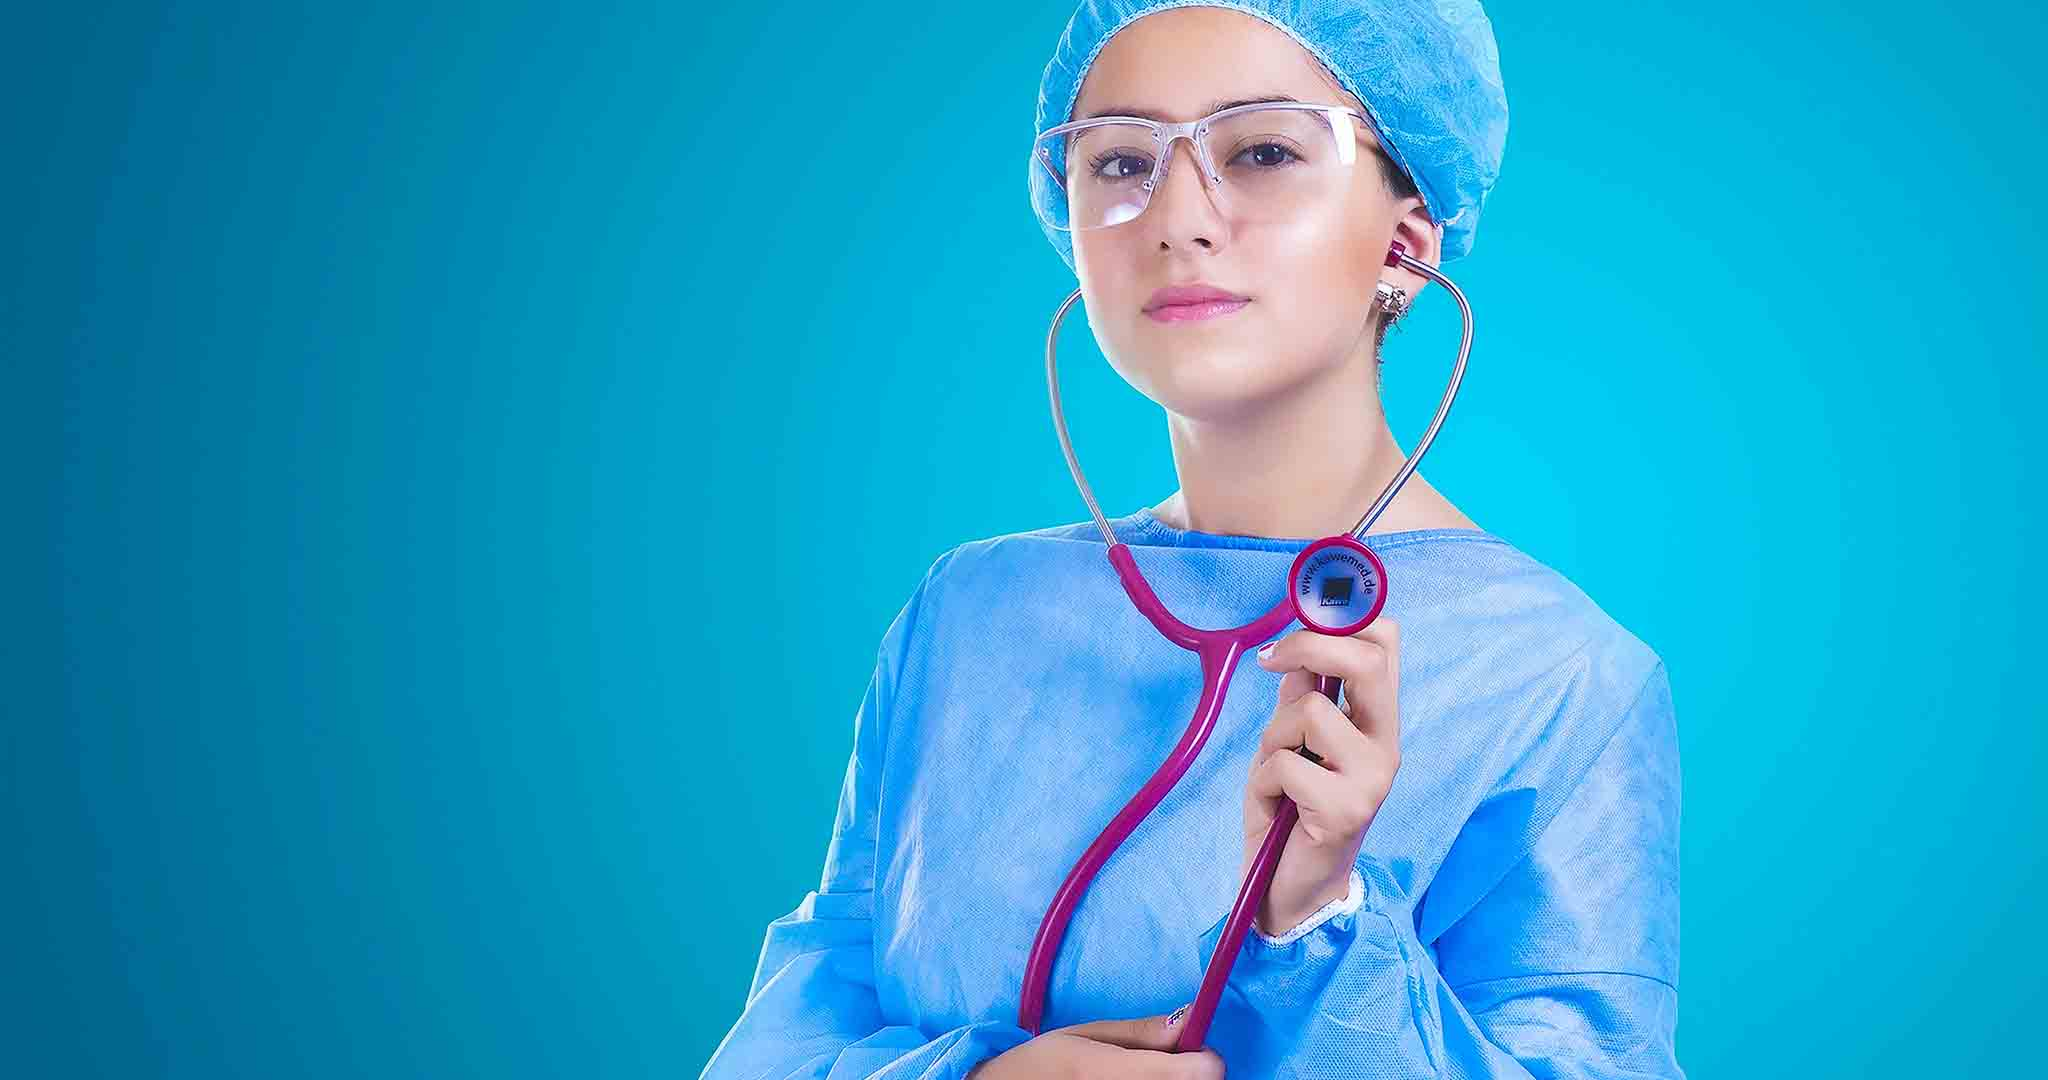 adult doctor girl nurse stock photography